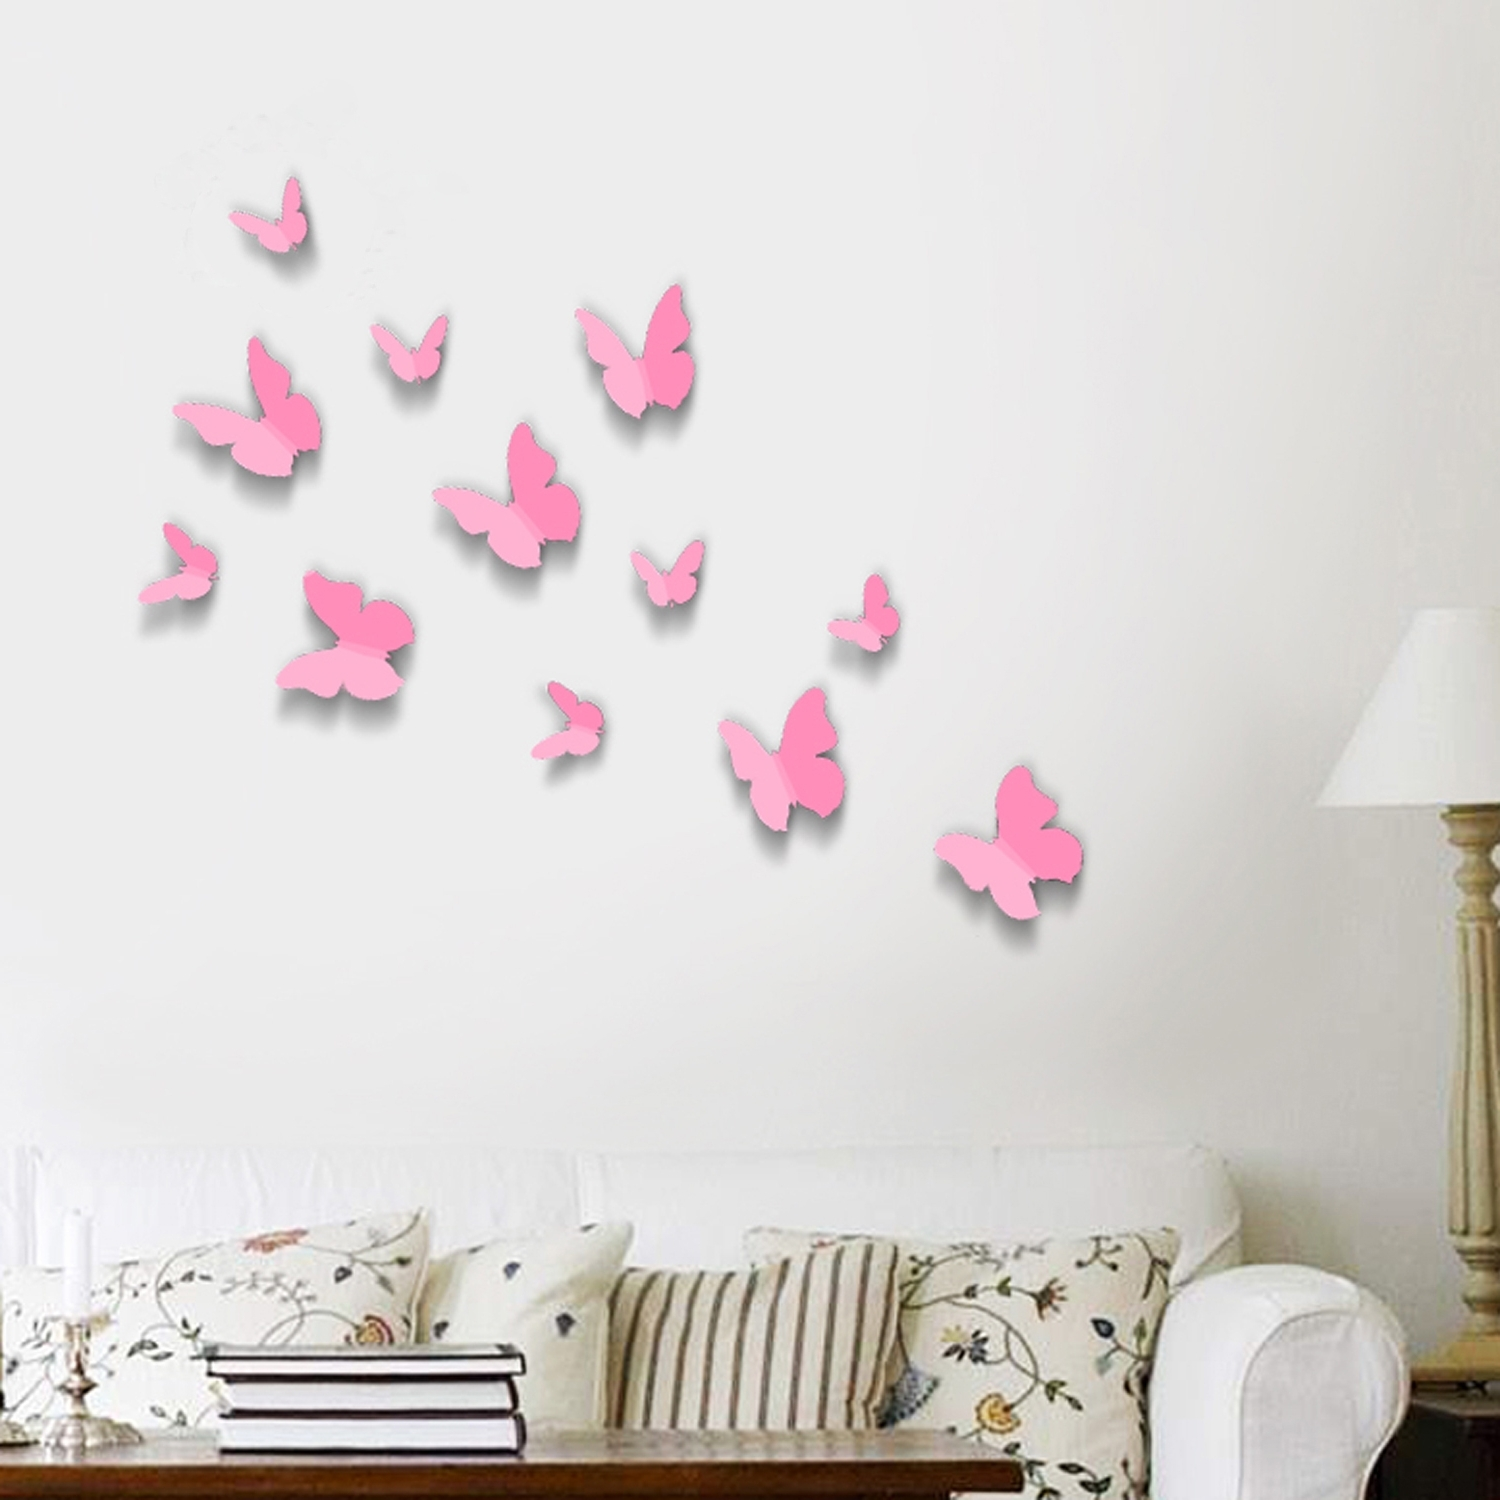 Pink 3d Butterflies Wall Art Stickers With Regard To Best And Newest Pink Butterfly Wall Art (View 4 of 15)